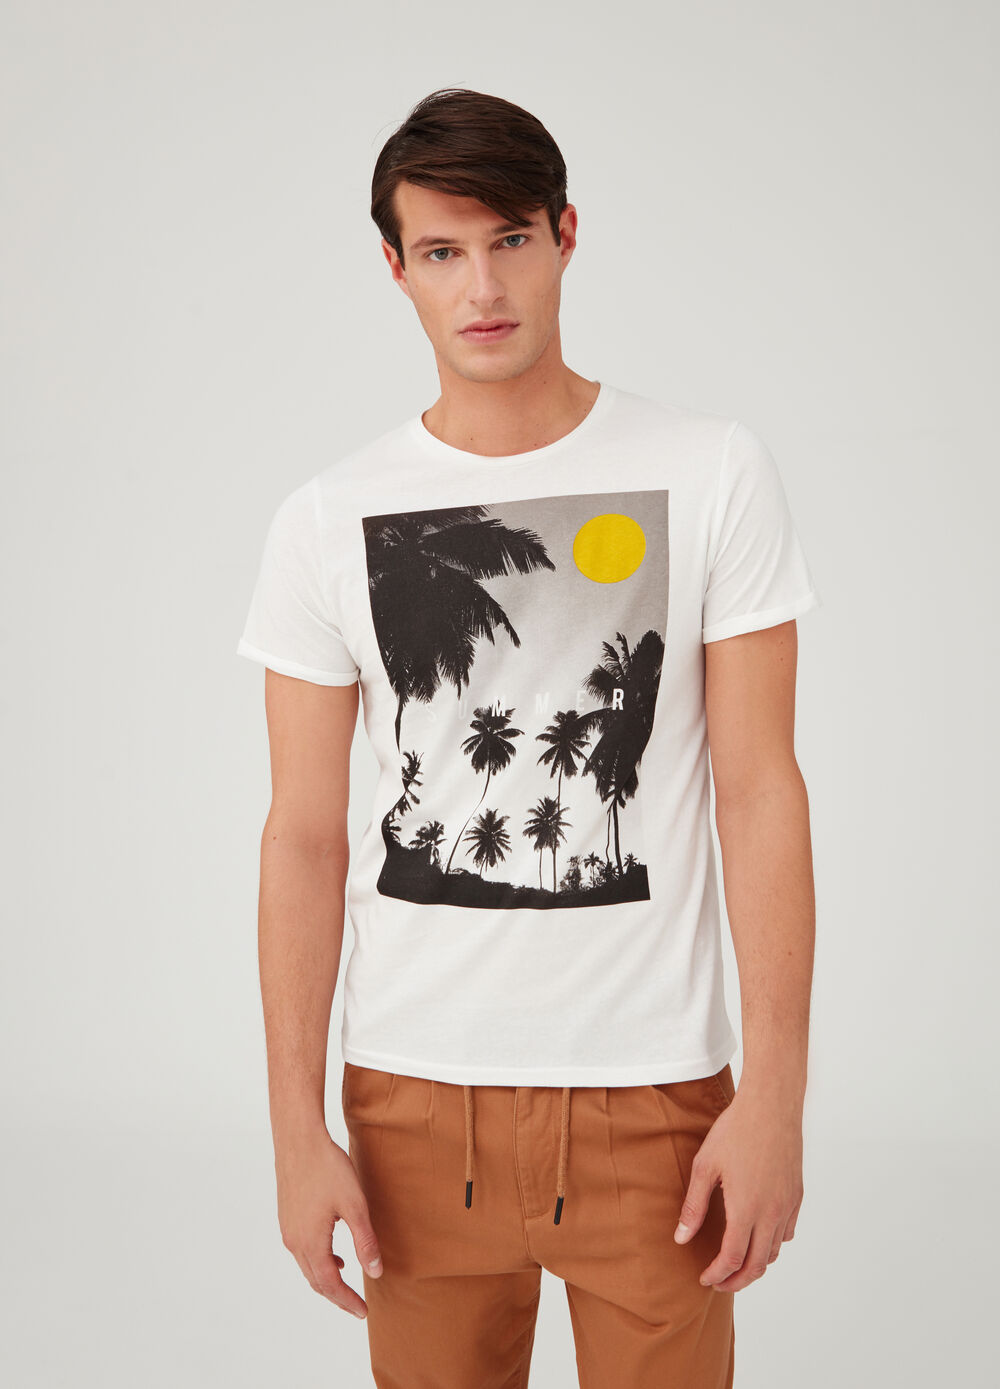 100% cotton T-shirt with photographic print